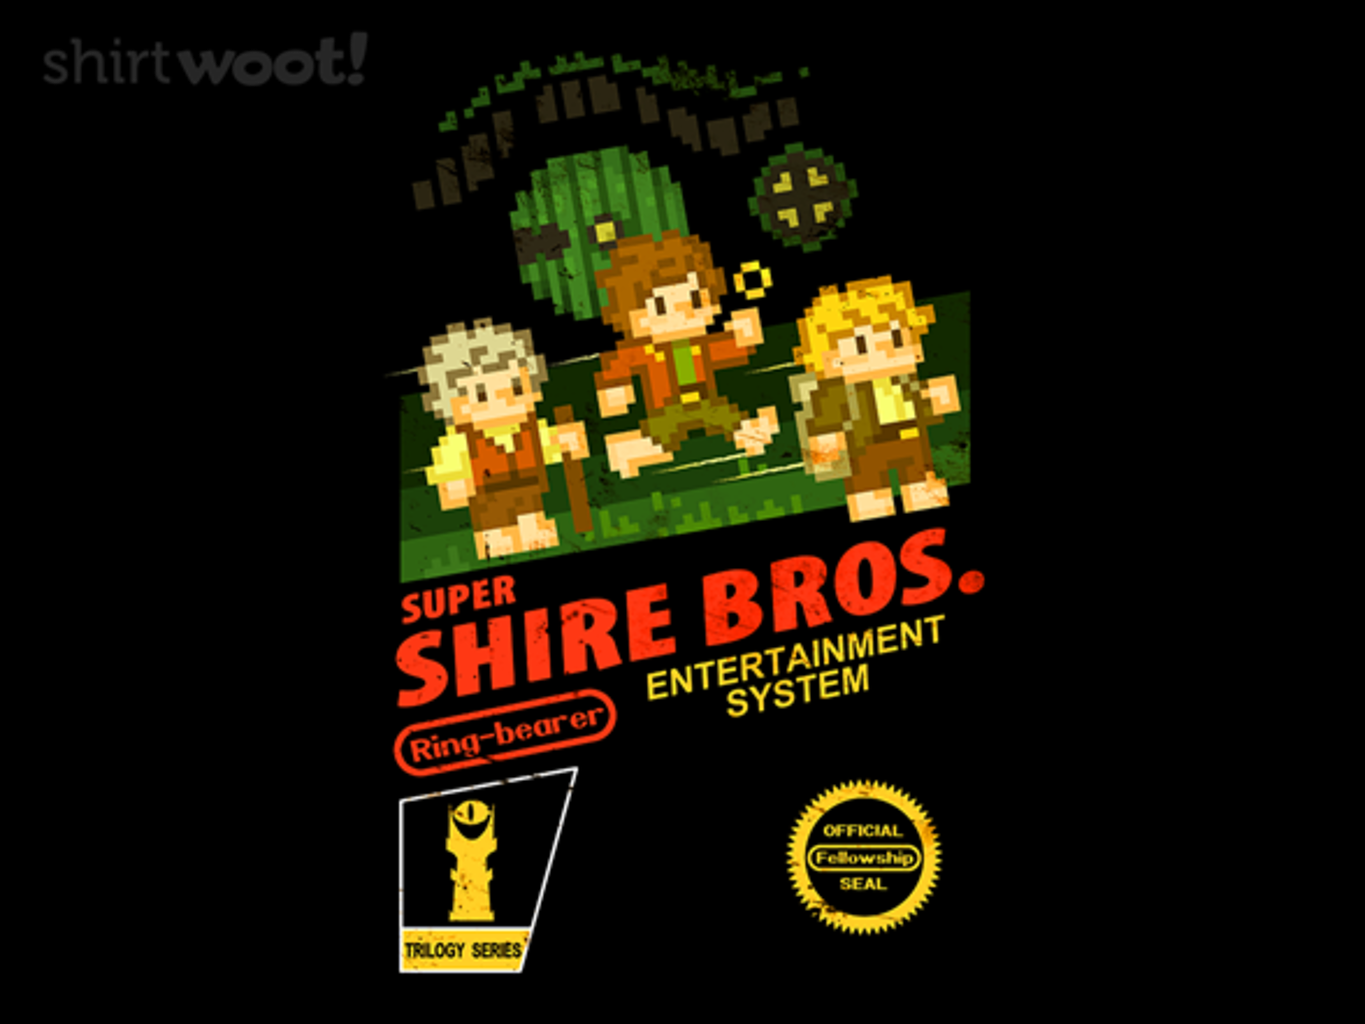 Woot!: Super Shire Bros.